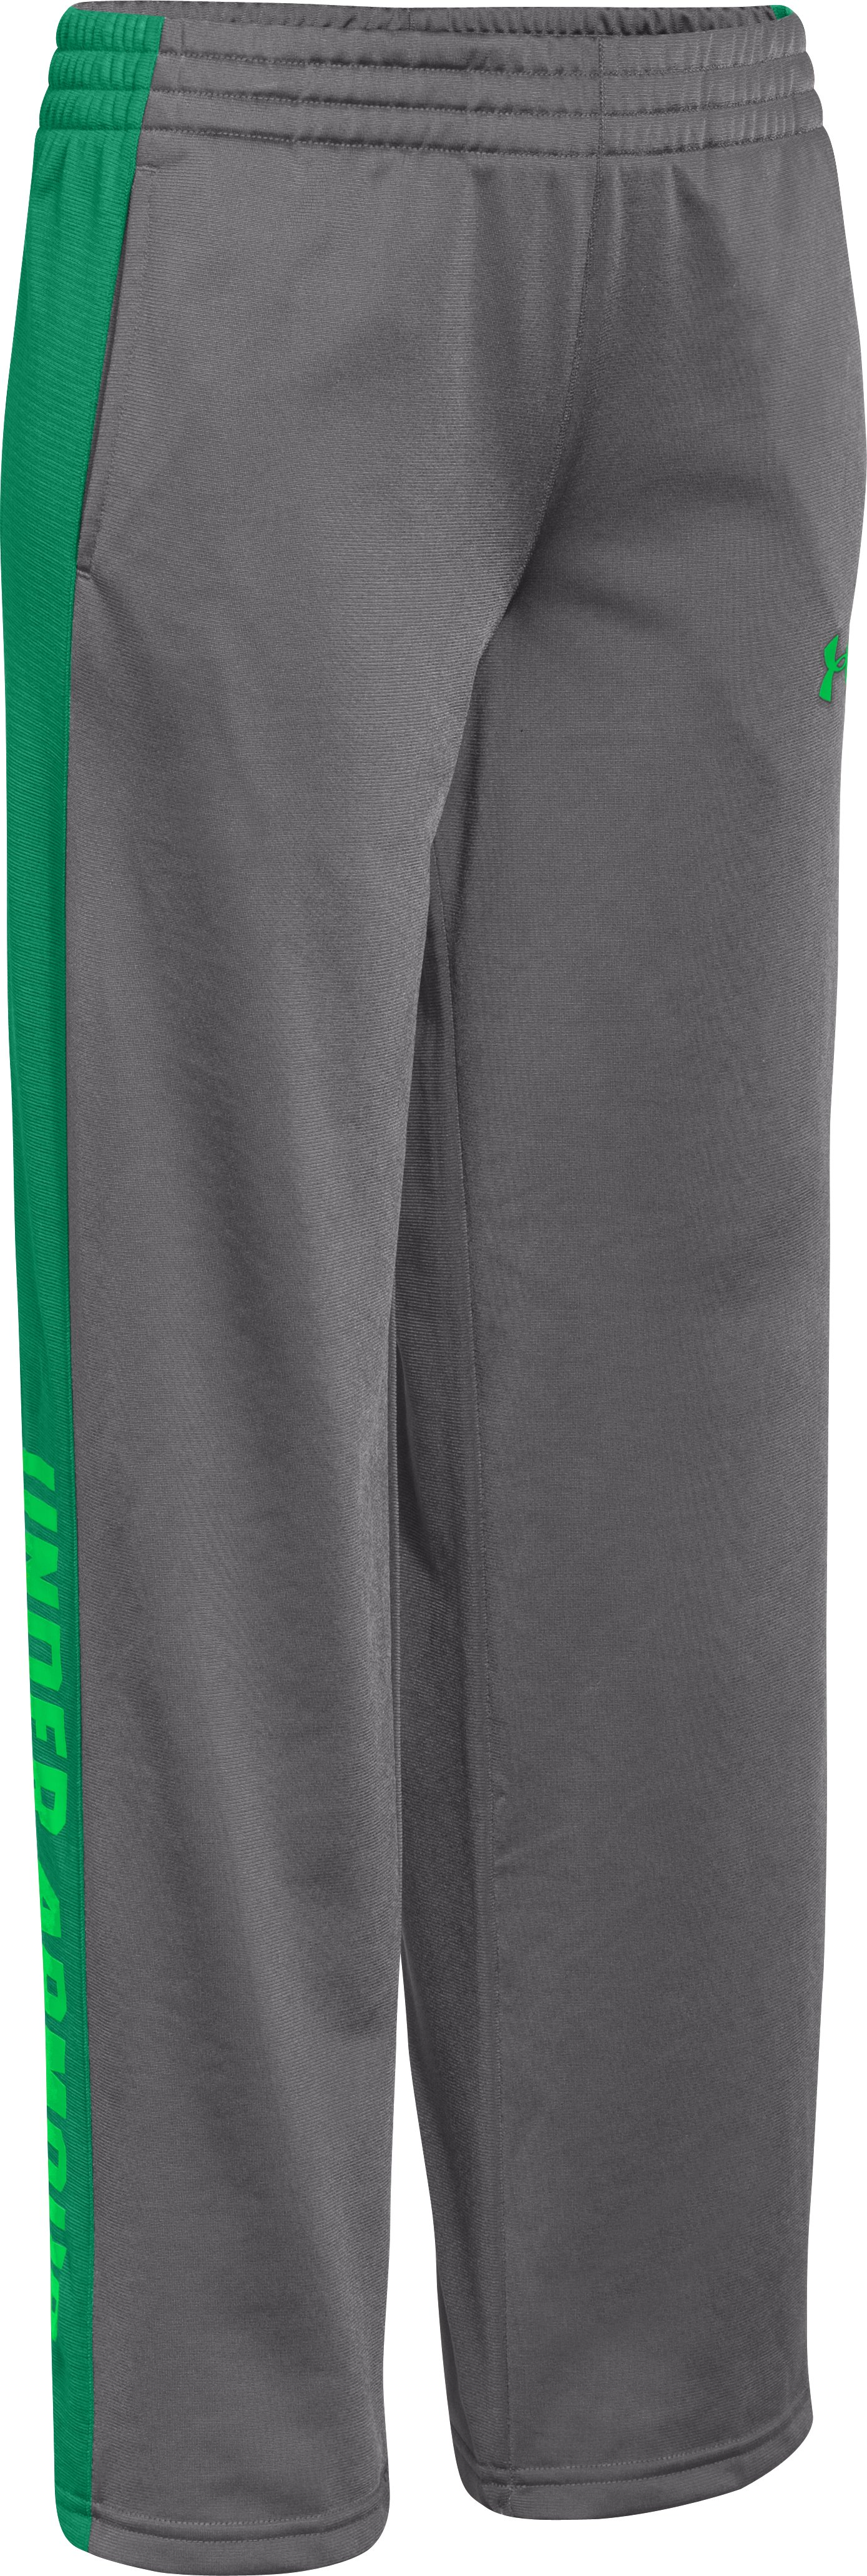 Boys' UA Brawler Knit Warm-Up Pants, Graphite